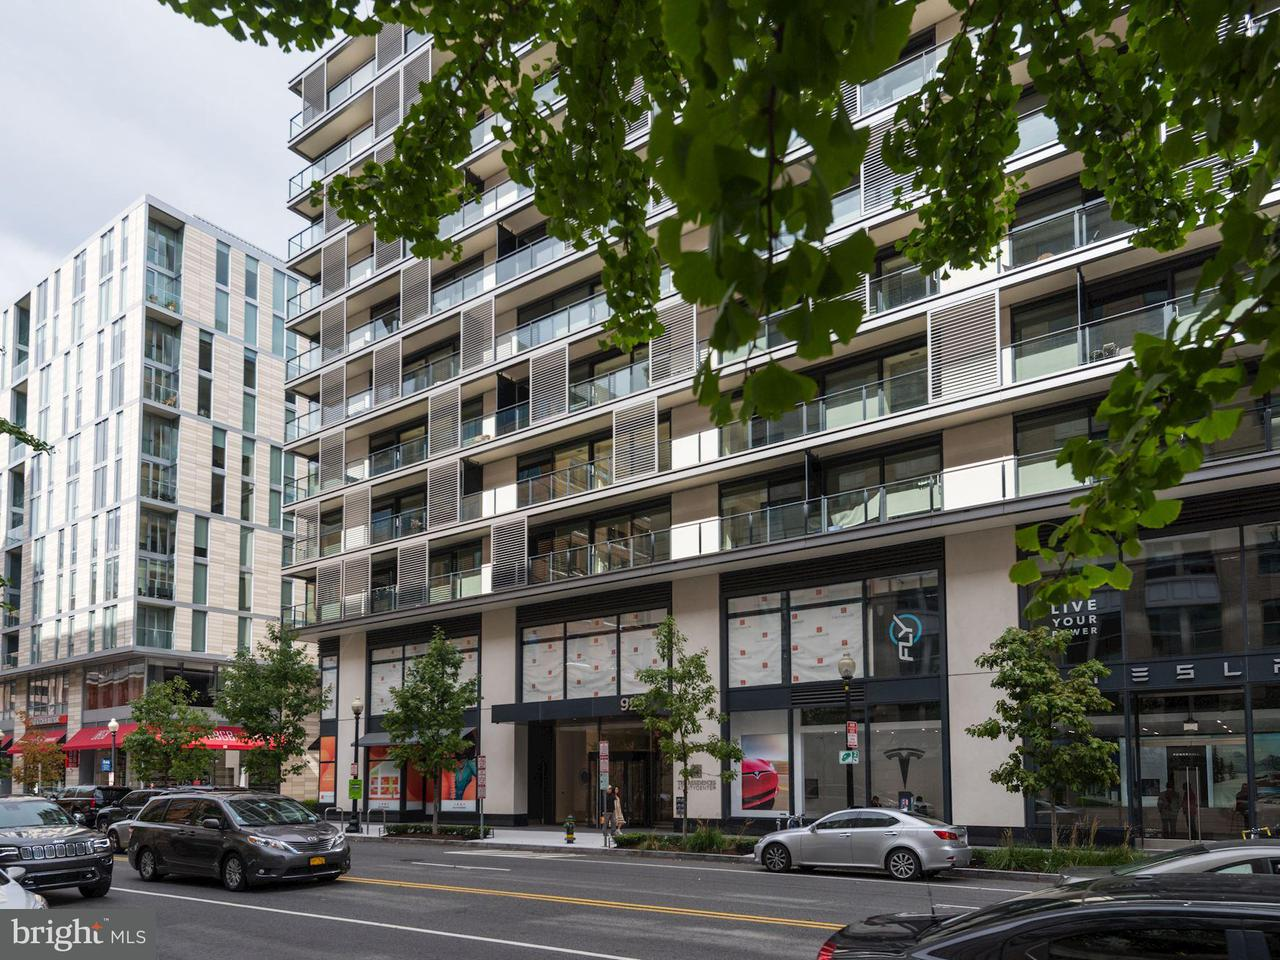 Additional photo for property listing at 925 H St Nw #410 925 H St Nw #410 Washington, 哥倫比亞特區 20001 美國